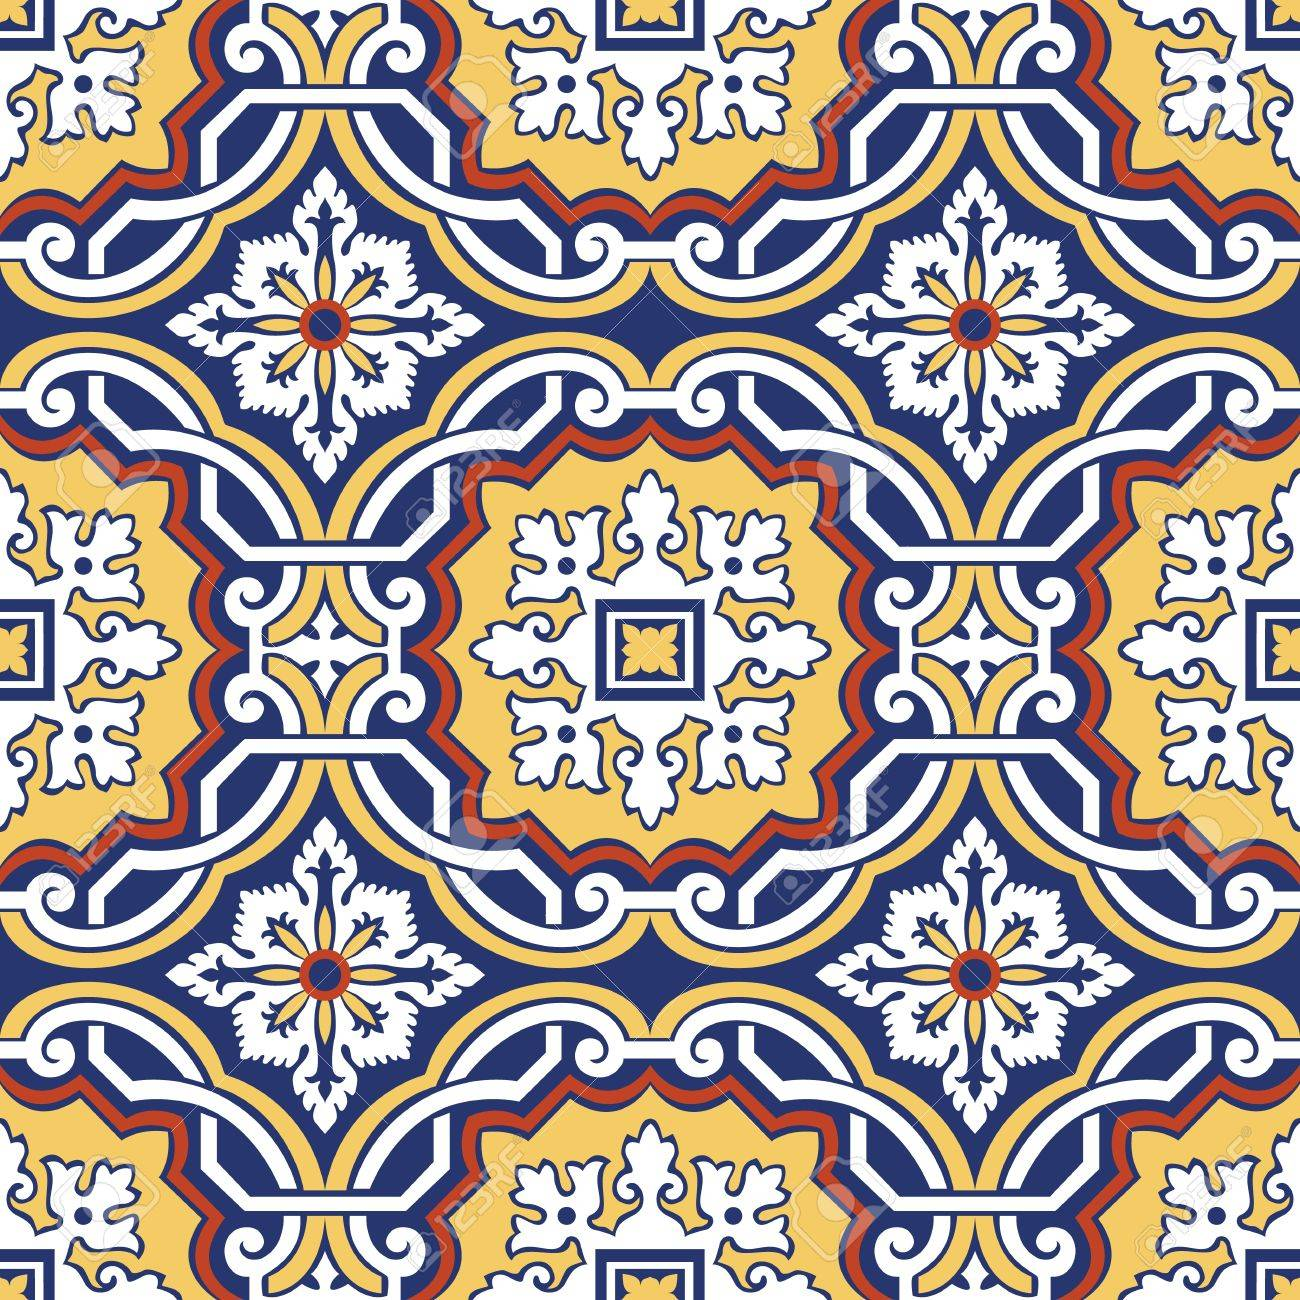 Background vintage flower  Seamless floral pattern  Abstract wallpaper  Texture royal Fabric illustration Stock Vector - 20666634